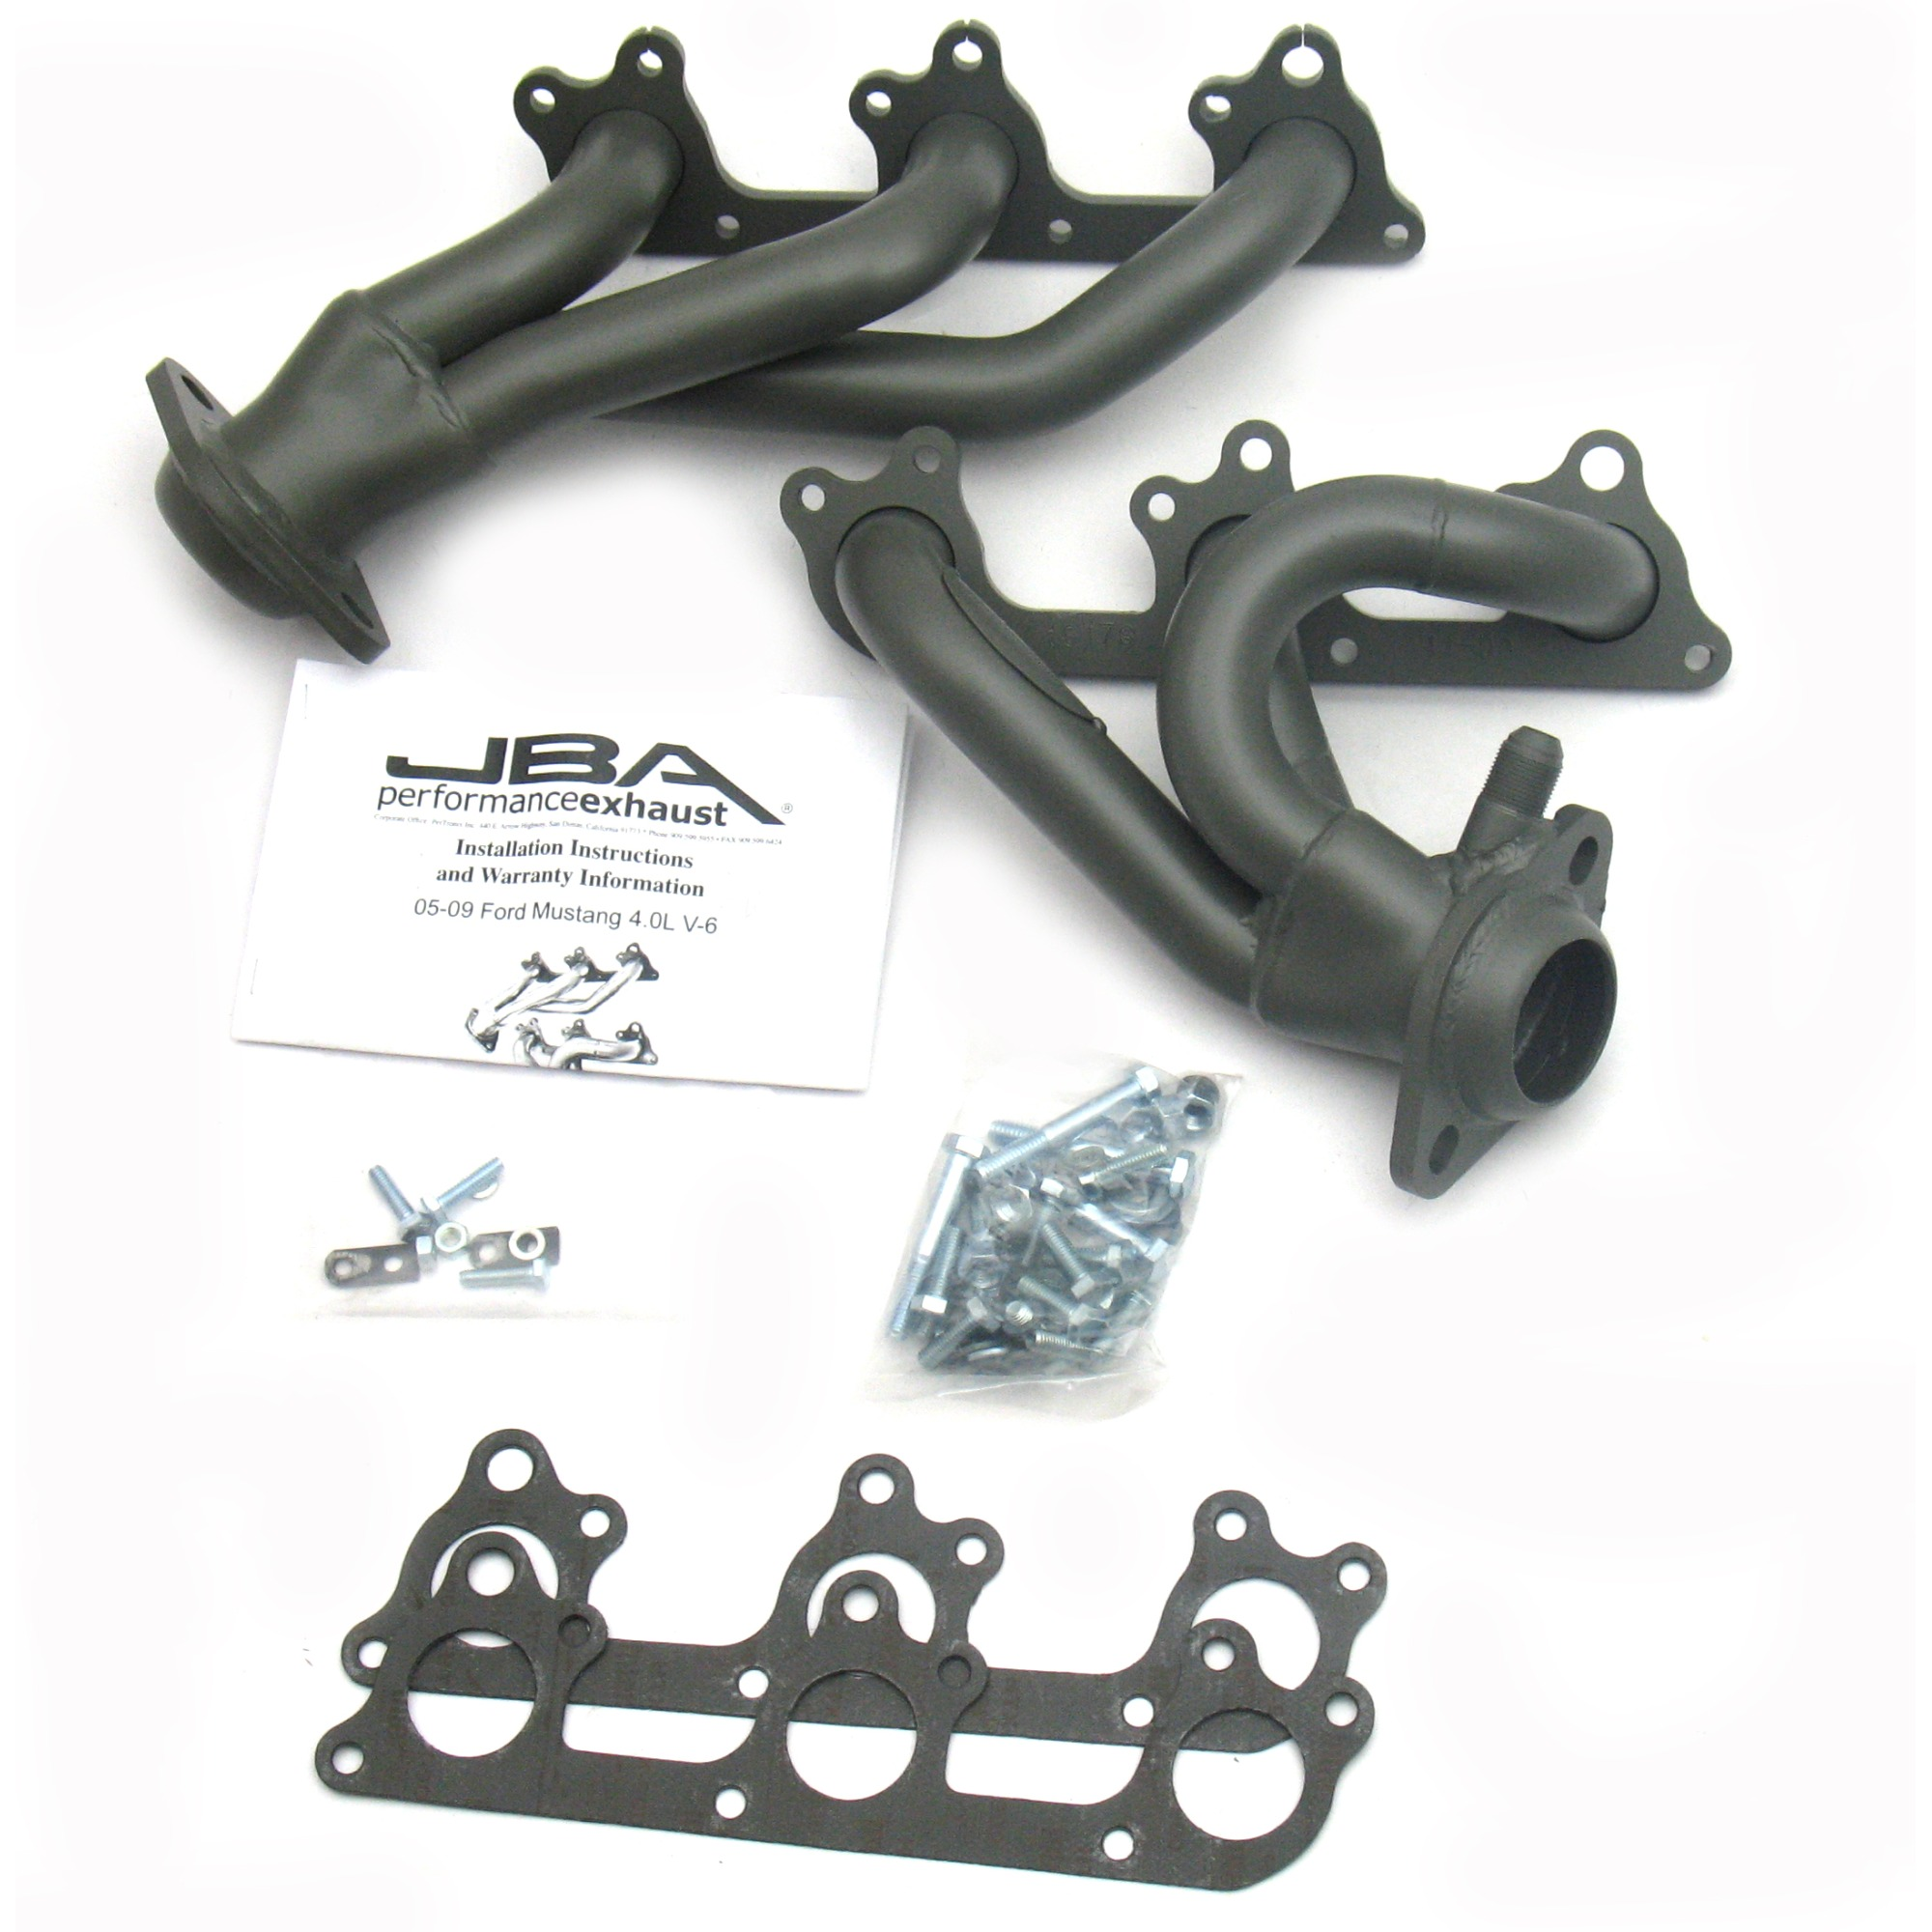 2005-2010 Mustang V6 JBA Cat-Forward Shorty Headers (4.0L) - Titanium Ceramic